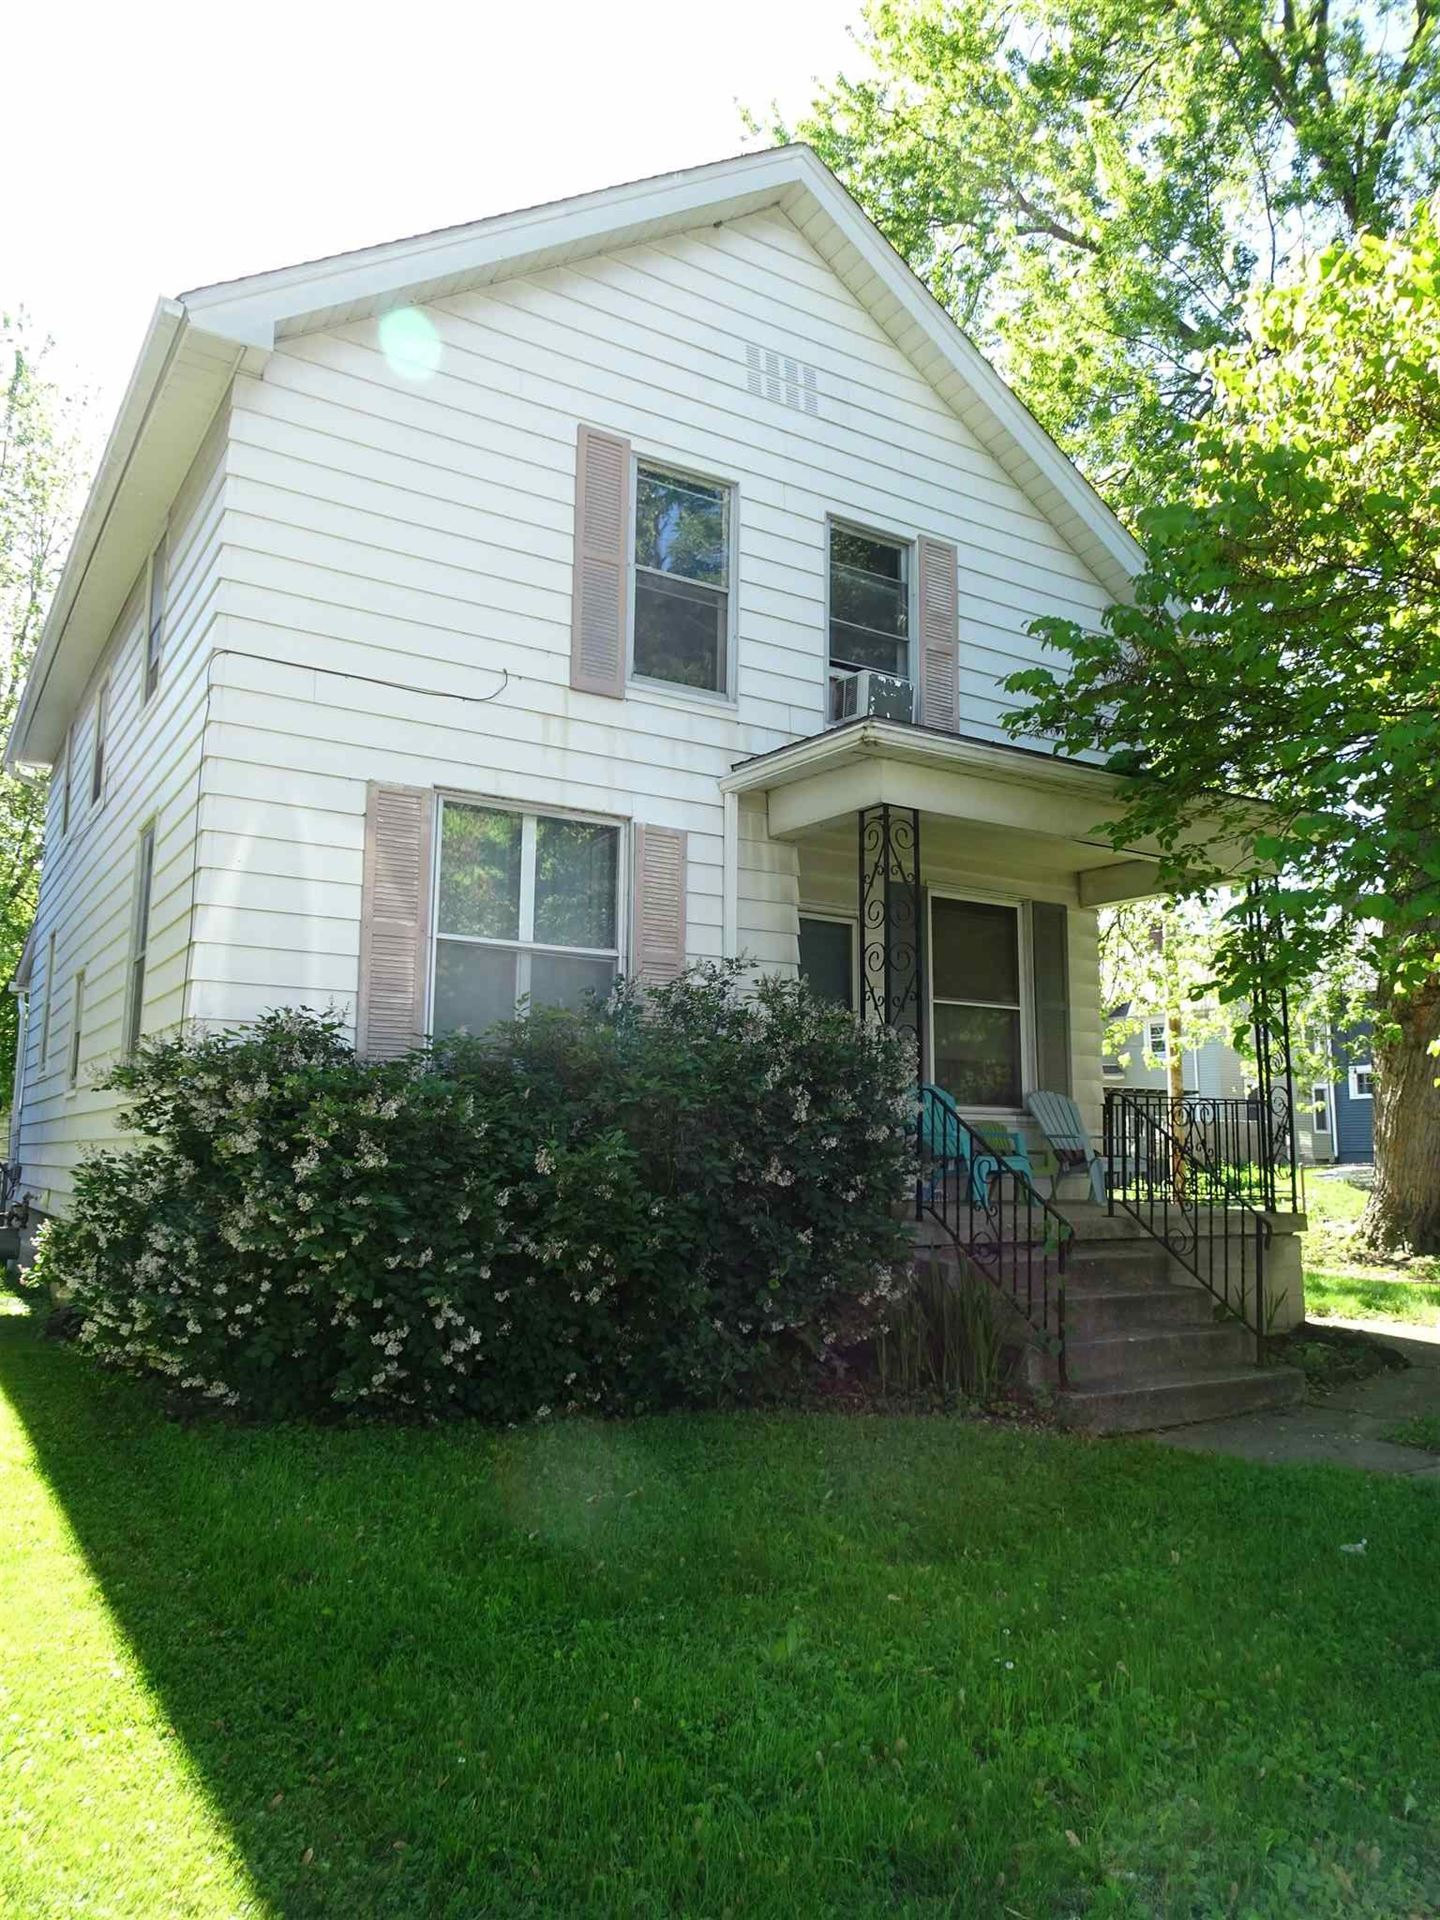 1815 Bayer Avenue, Fort Wayne, IN 46805 - #: 202019821